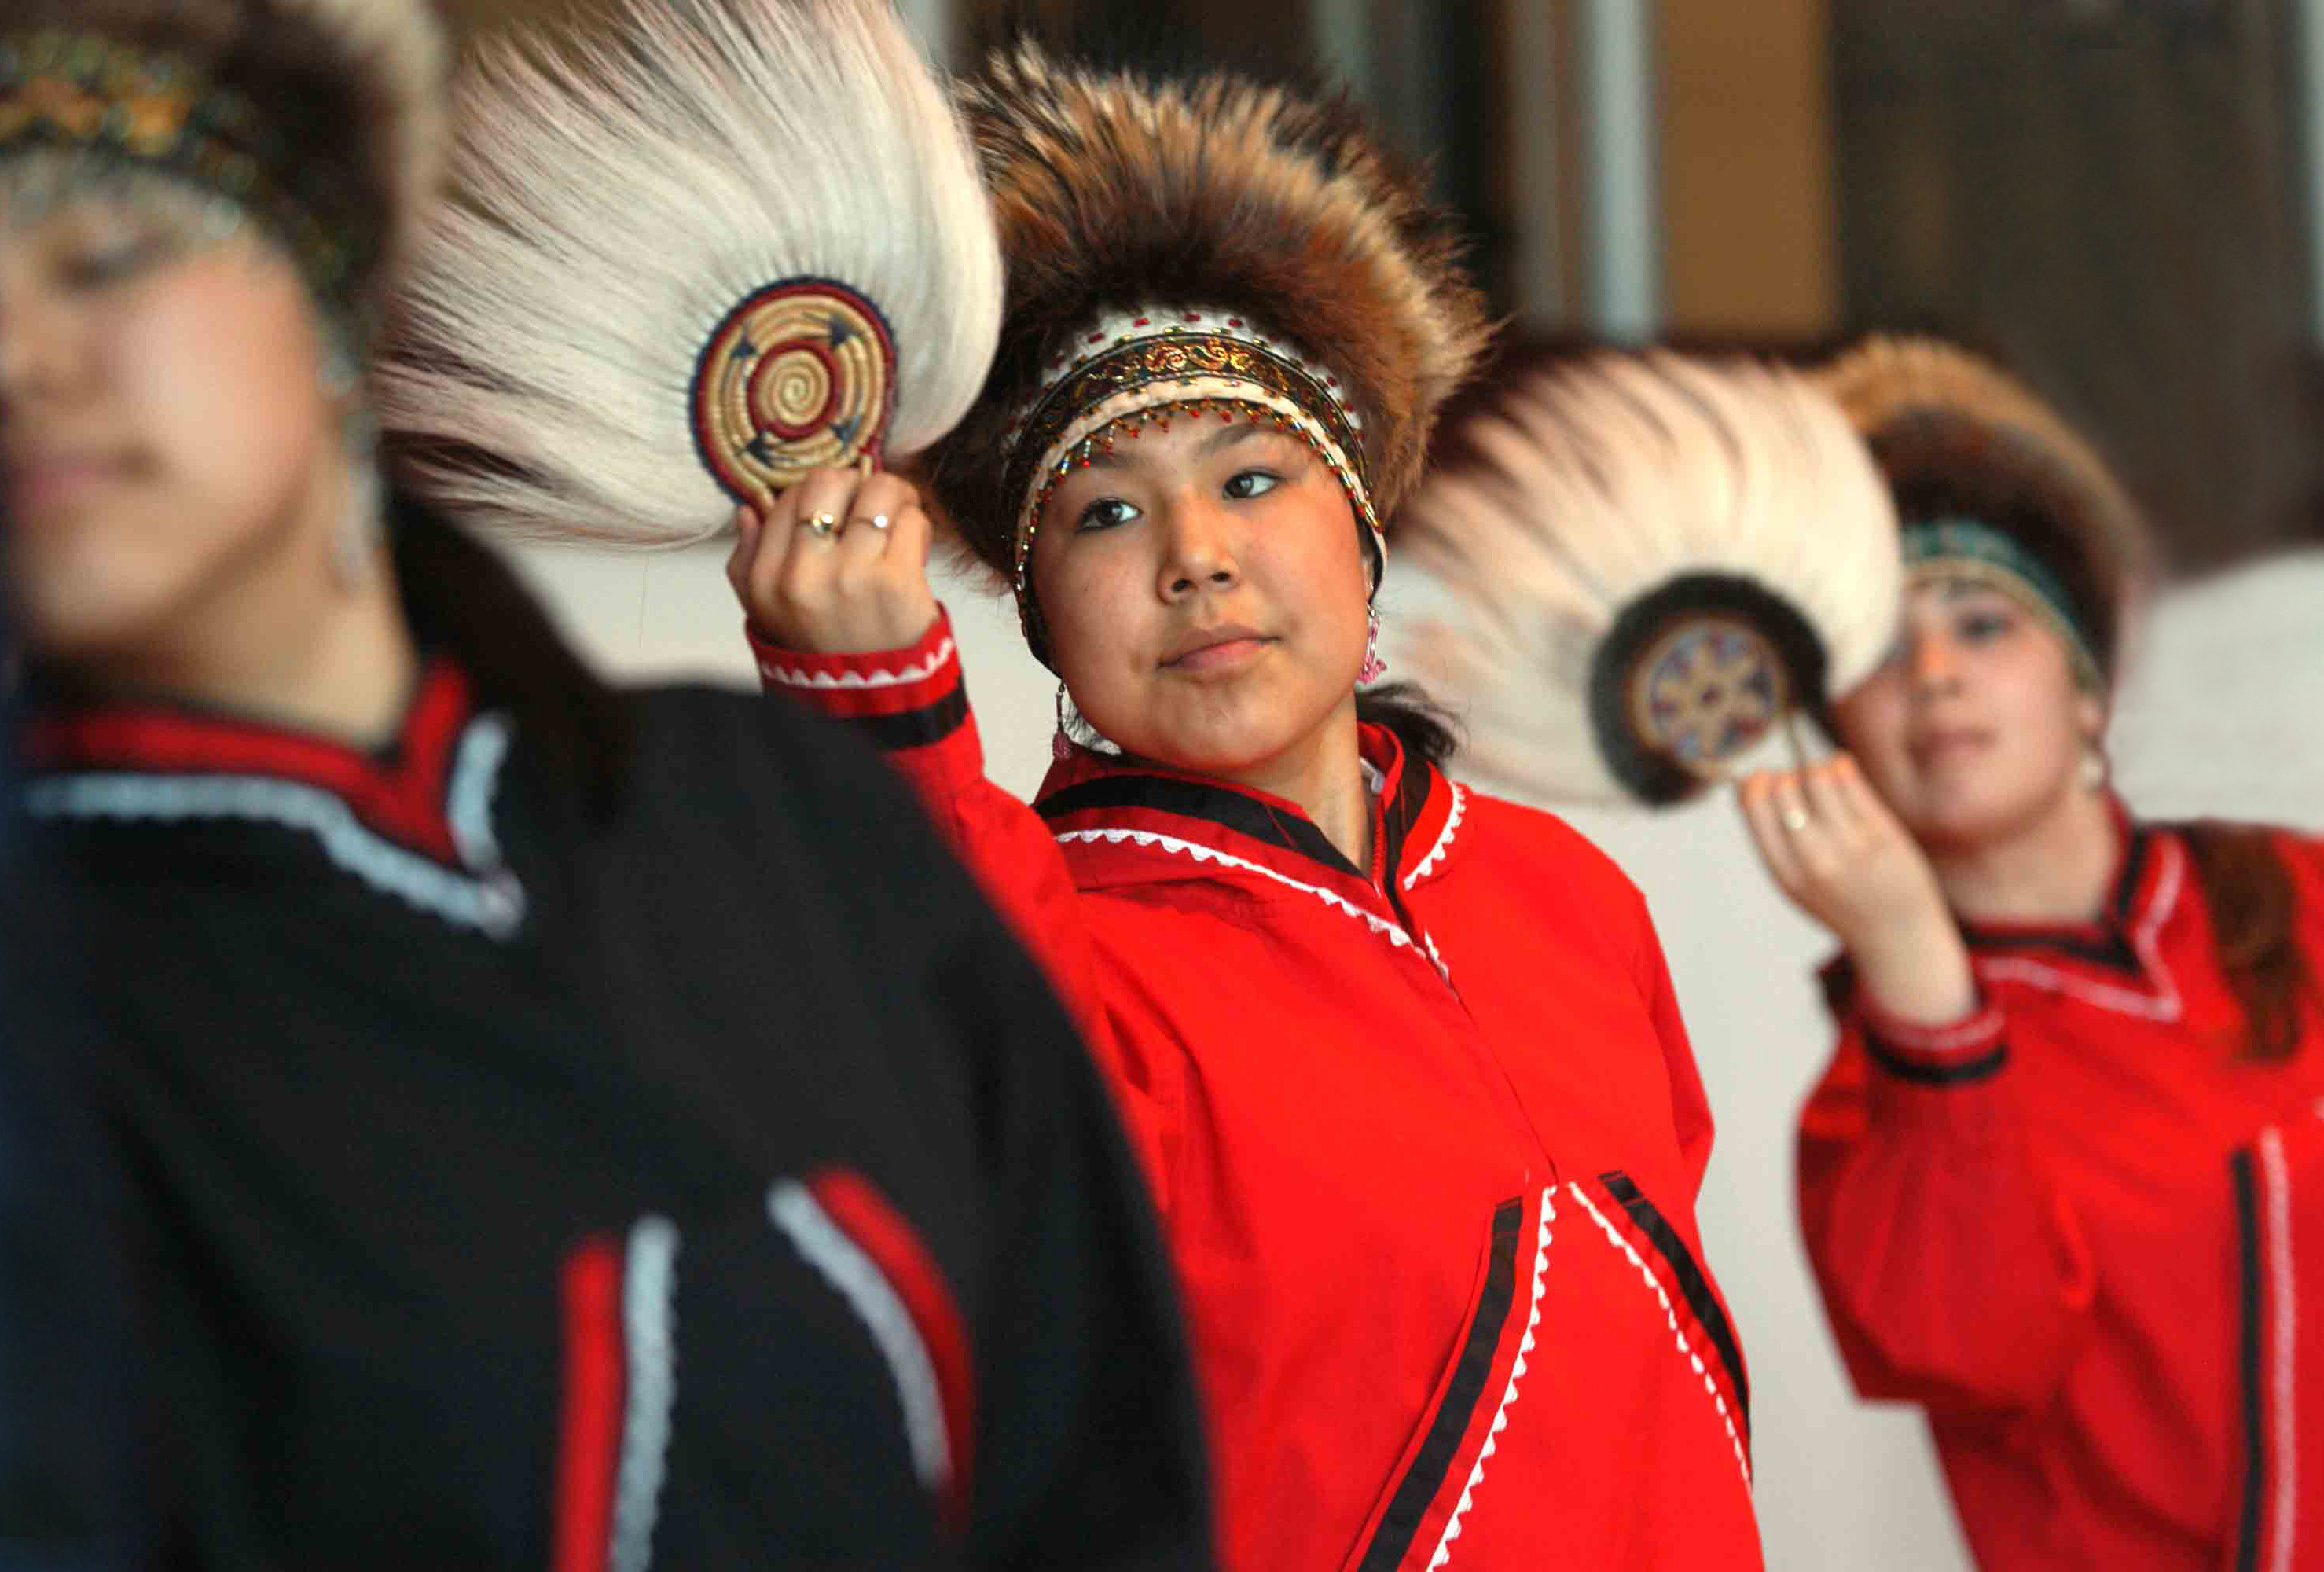 Alaska Native Heritage Dancers – Courtesy of Alaska Native Heritage Center